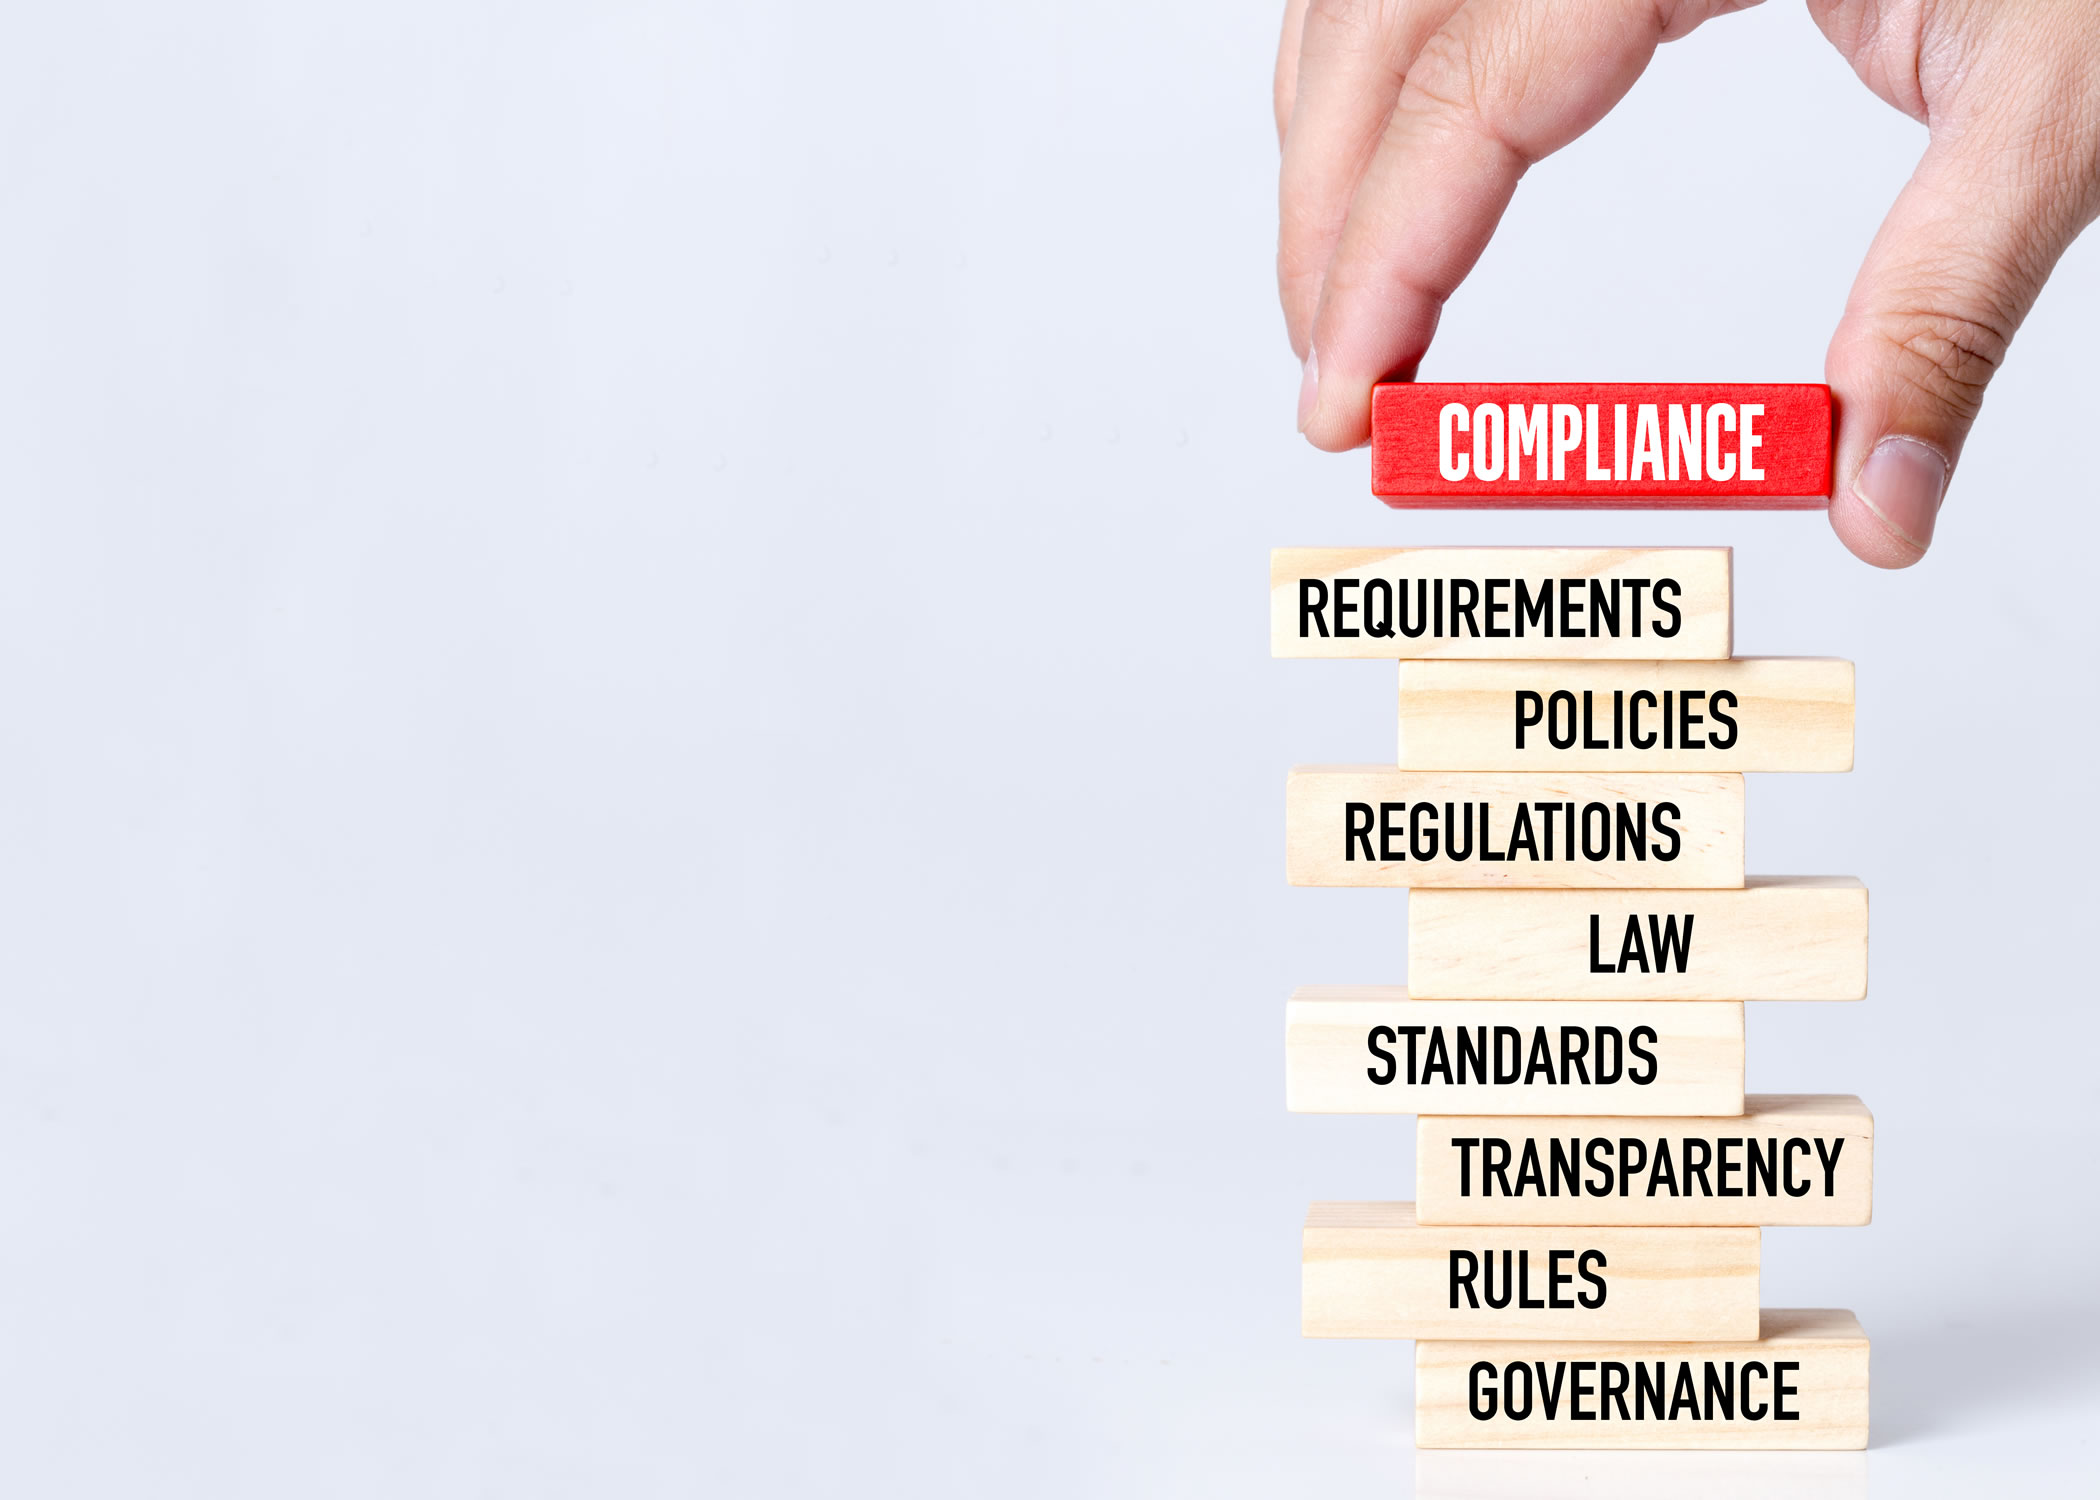 Preparing for an OFCCP Compliance Reivew (Establishment and FAAPS)